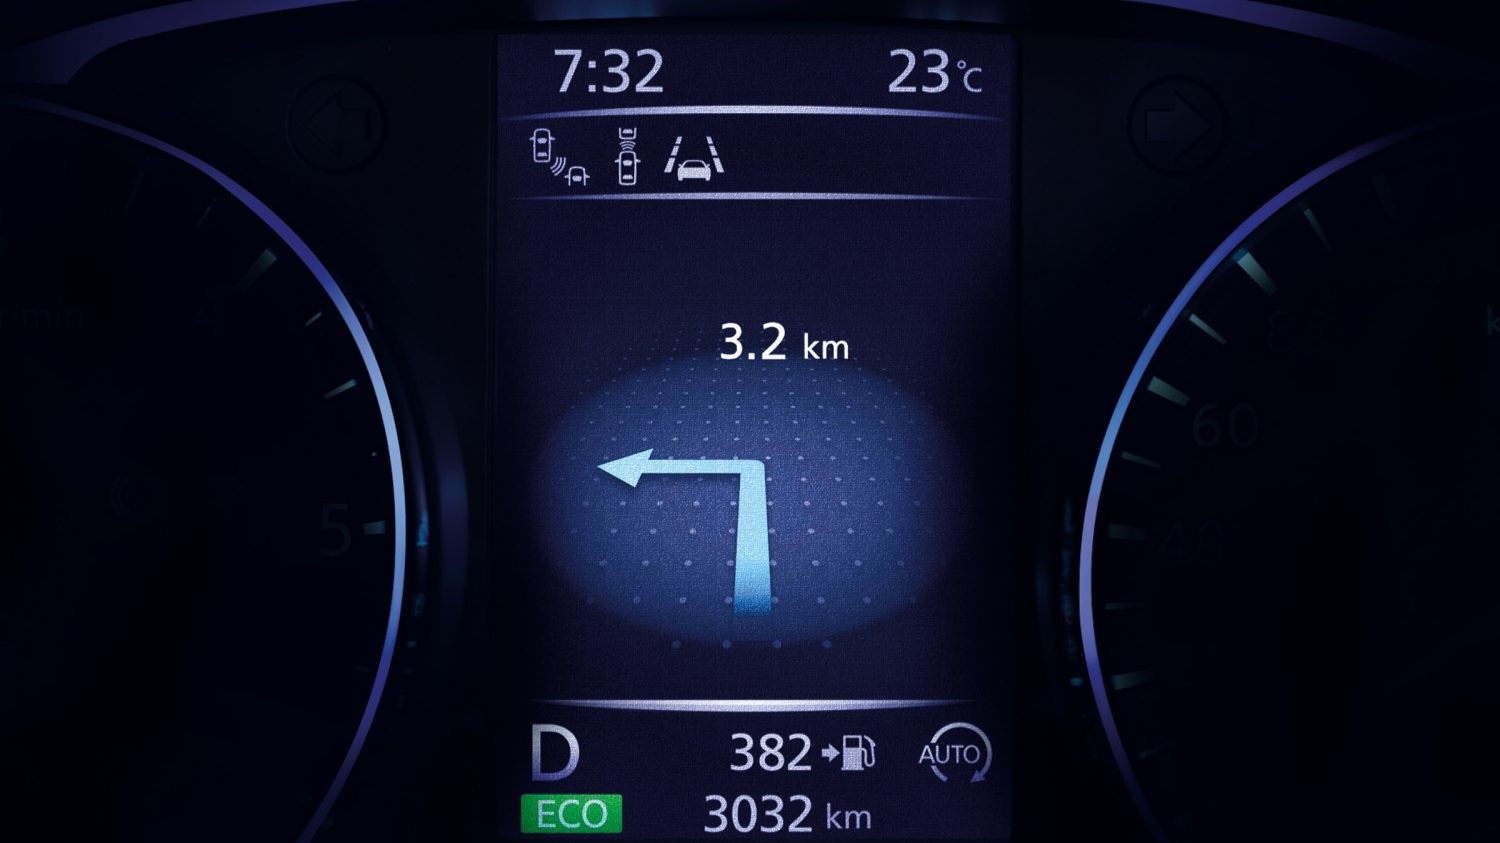 Nissan QASHQAI TFT-display routebeschrijving